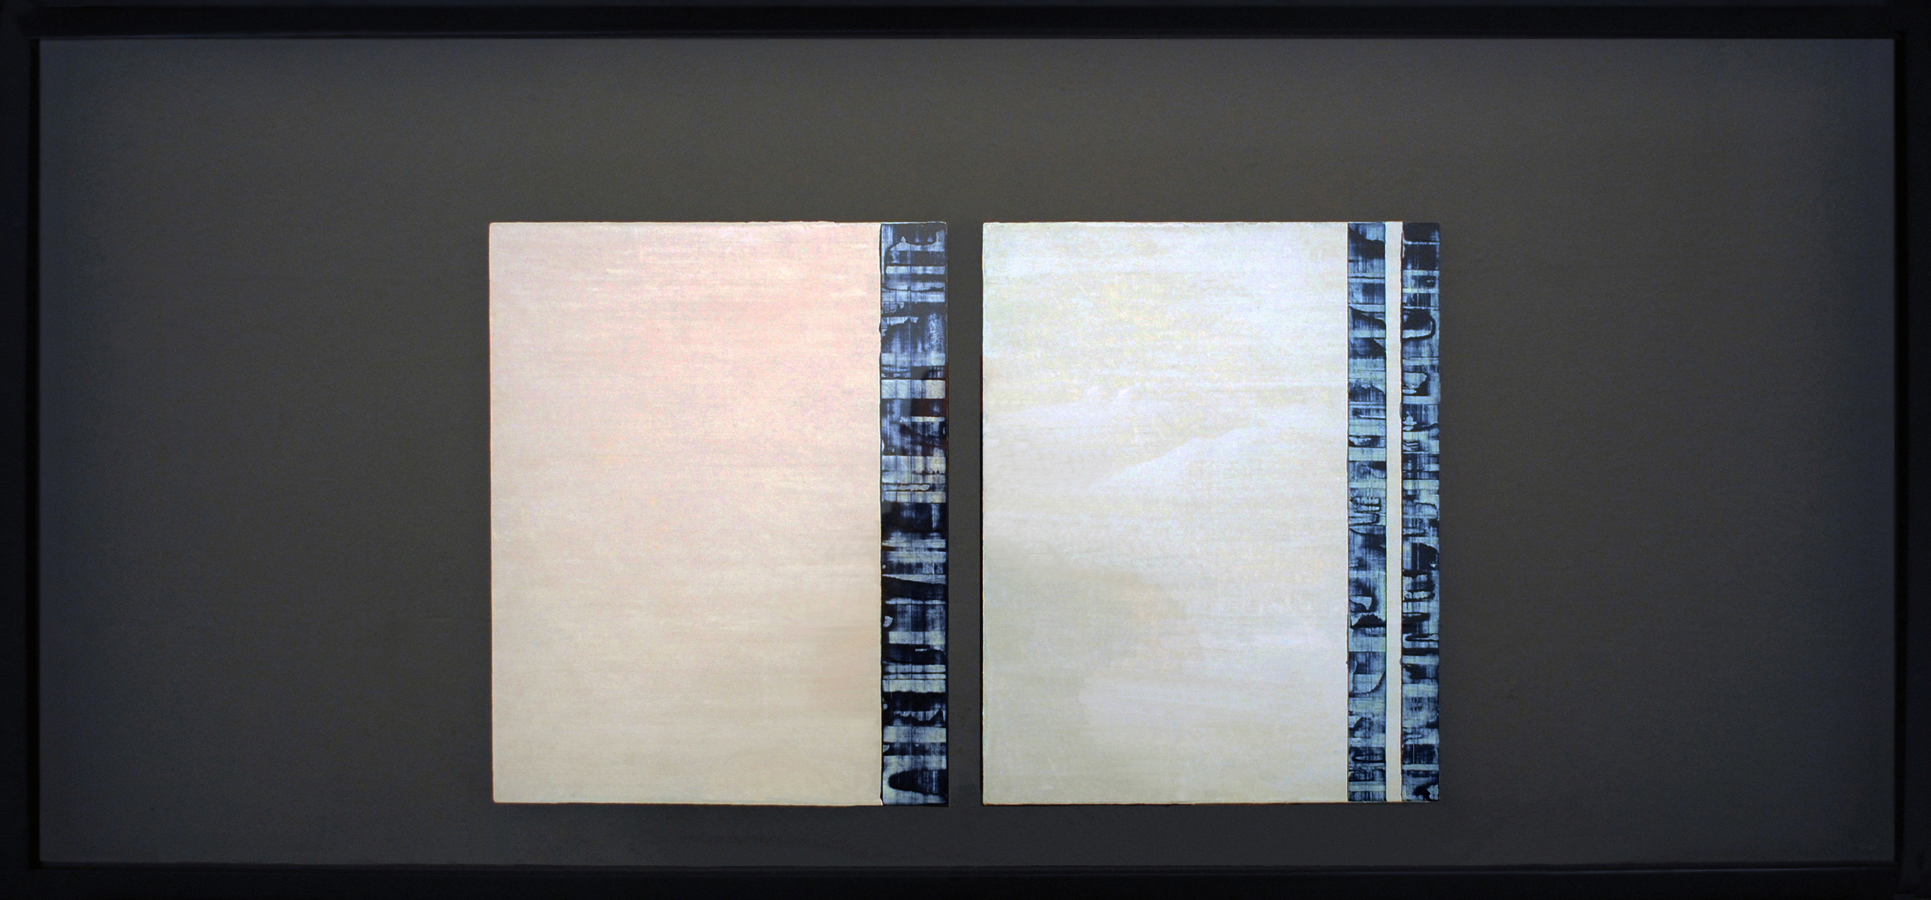 ISIS 31: Duo, 2014, Oil, acrylic on linen over panels, shadow box, 22 x 47 inches